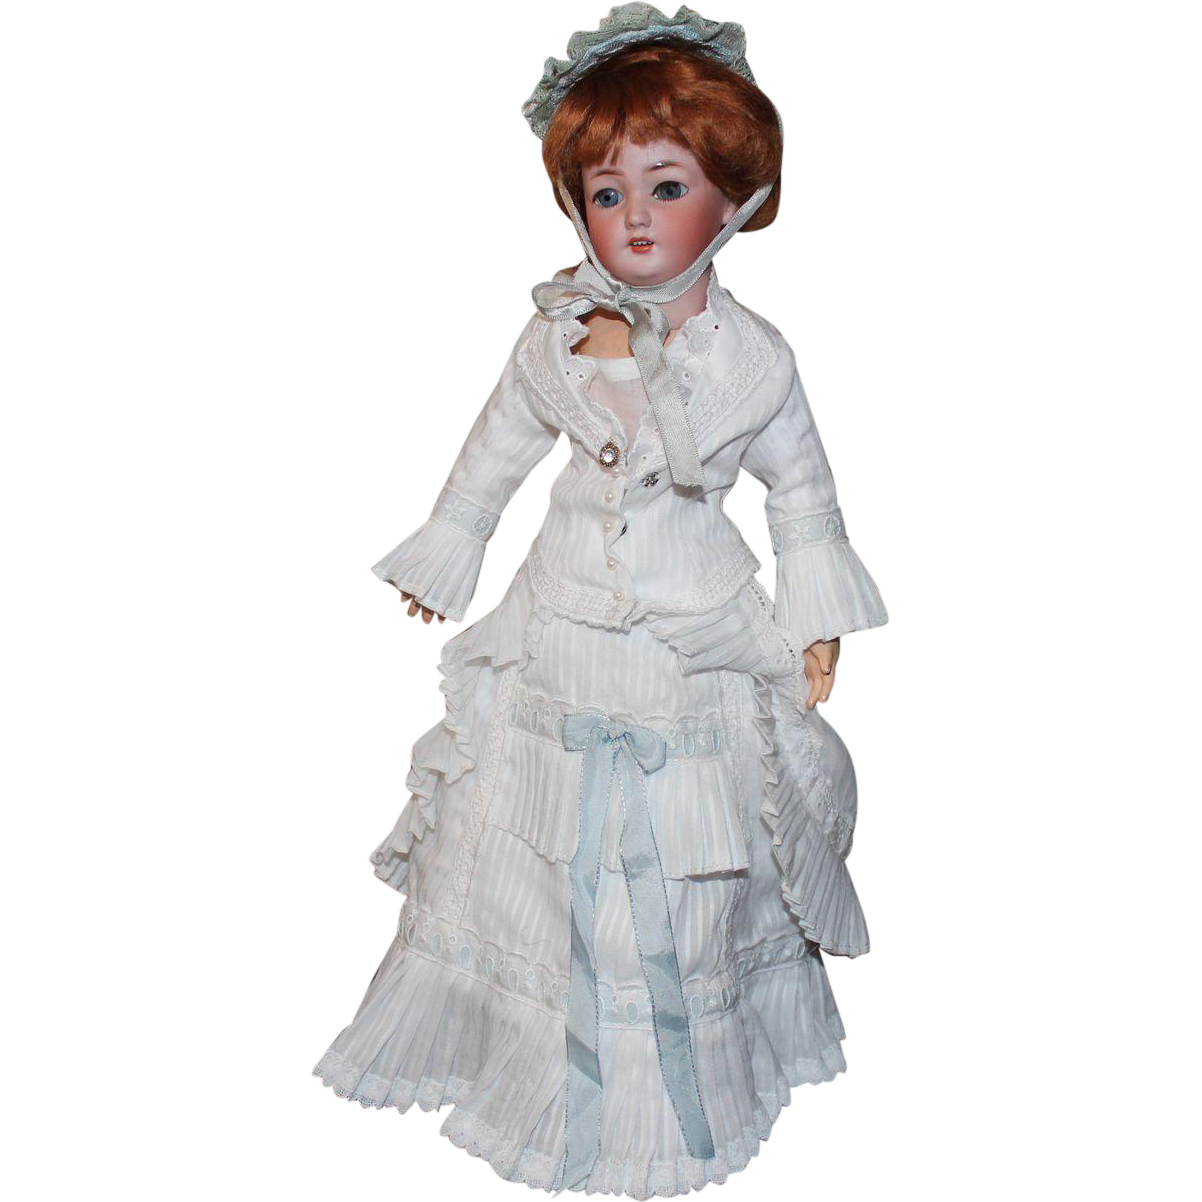 Simon Halbig Antique German Lady Doll # 1159 - 17 inch-A MODERN TWIST!!!